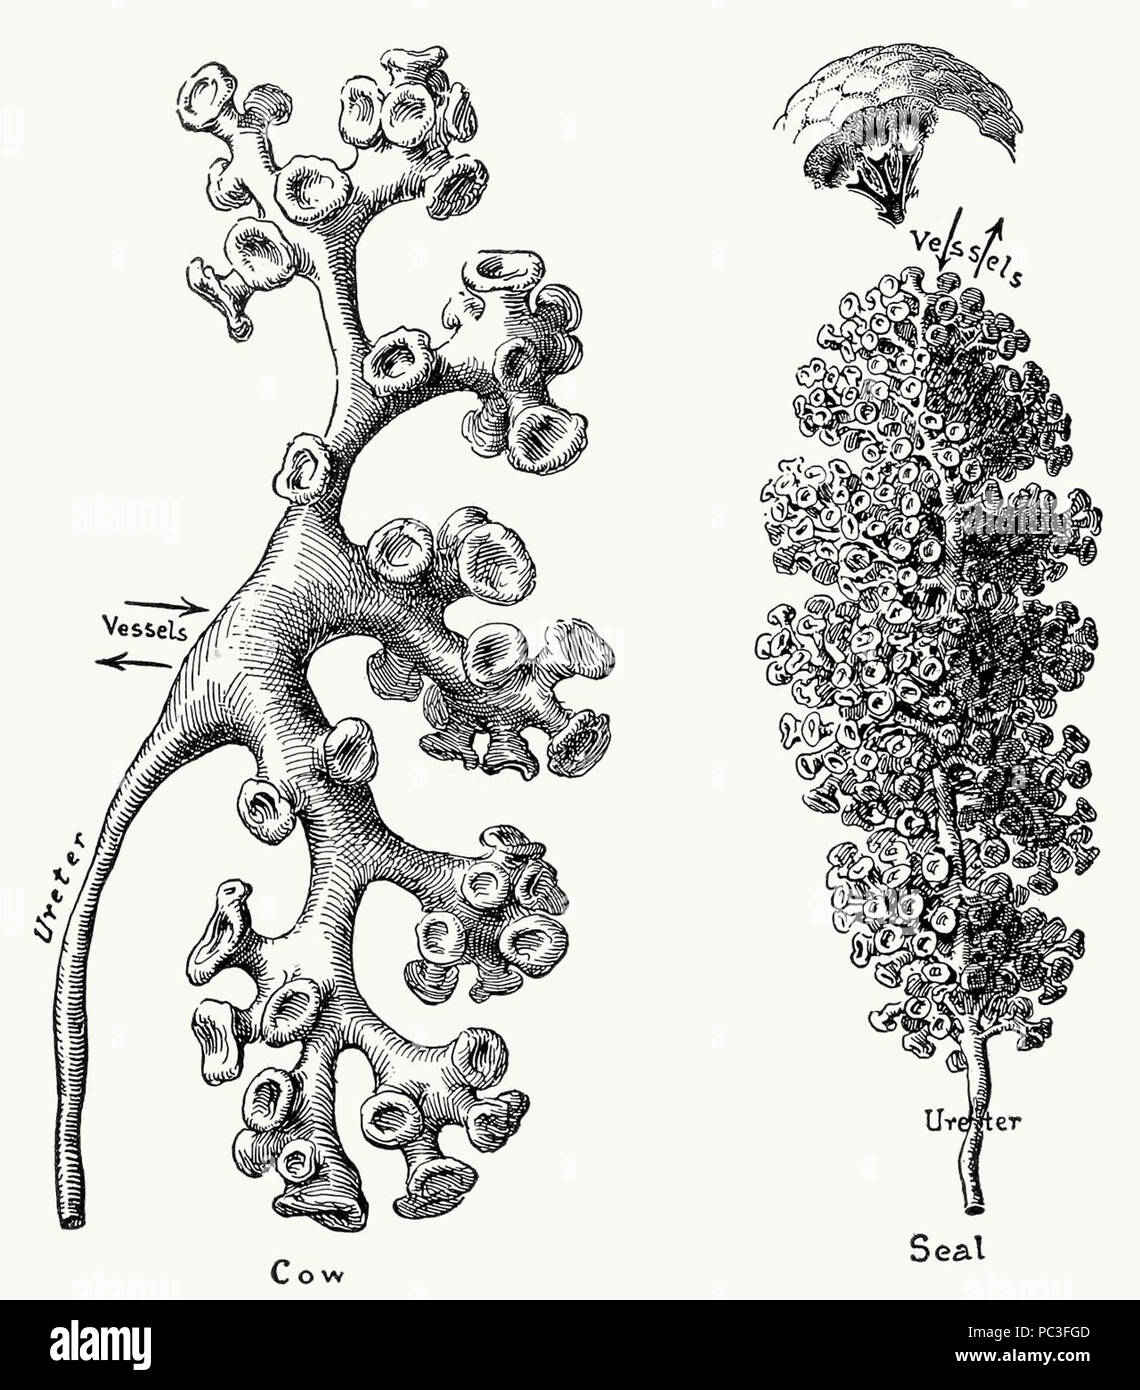 517 Renal pelves and calices - Stock Image